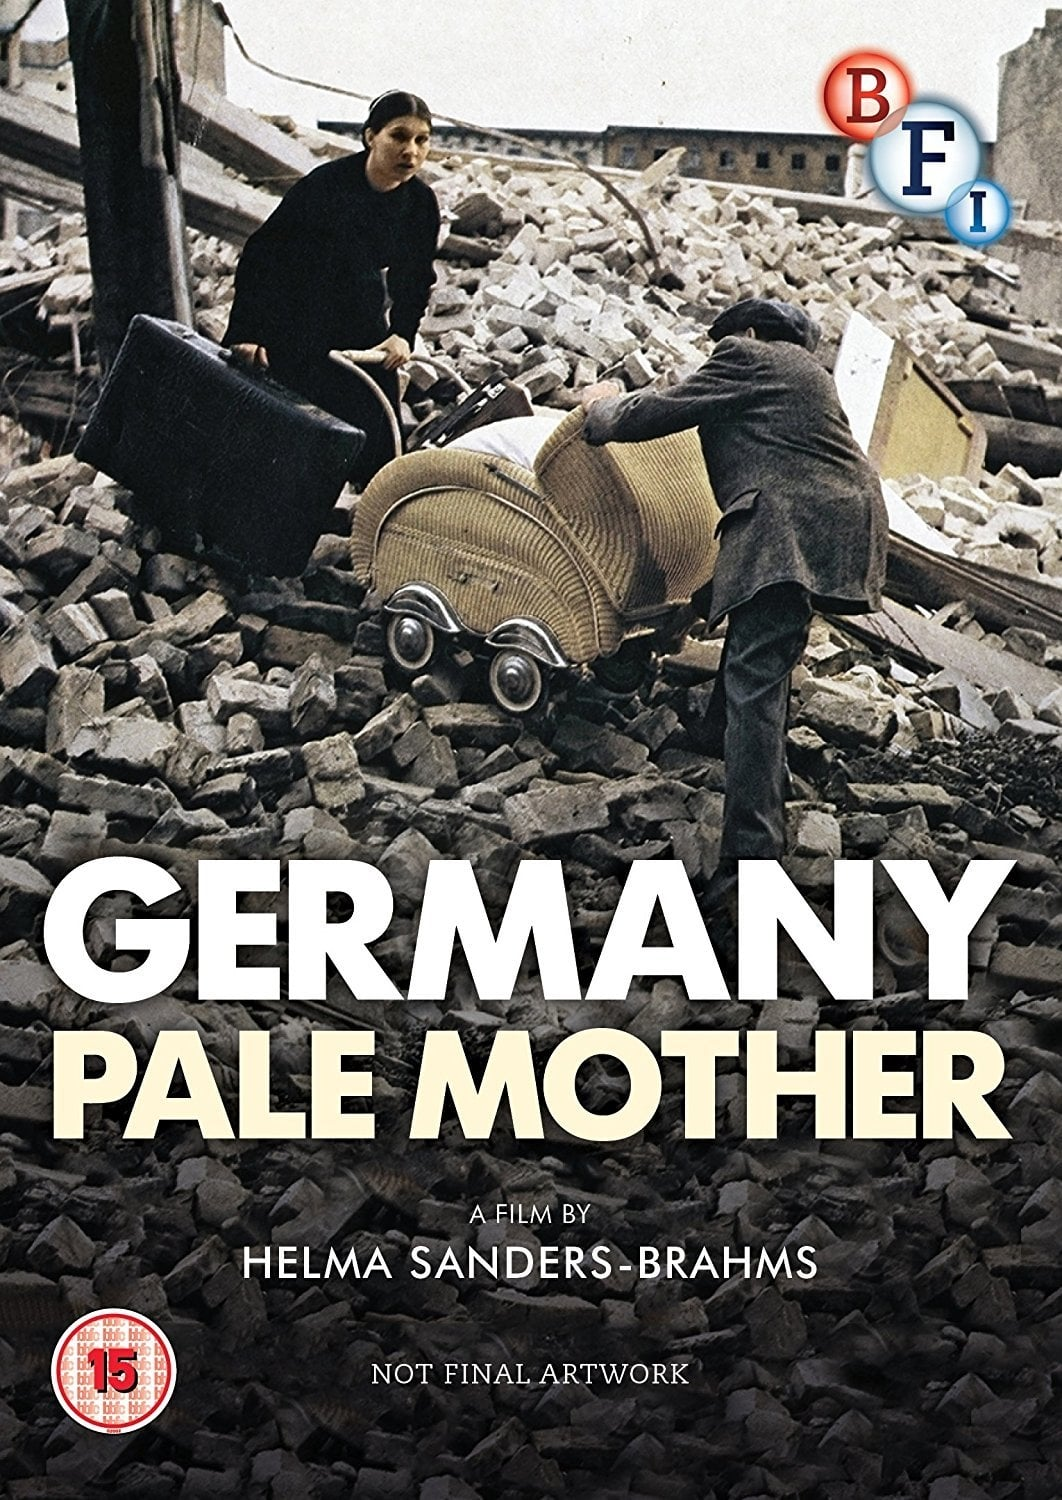 an analysis of the most haunting parts of sanders brahms film germany pale mother